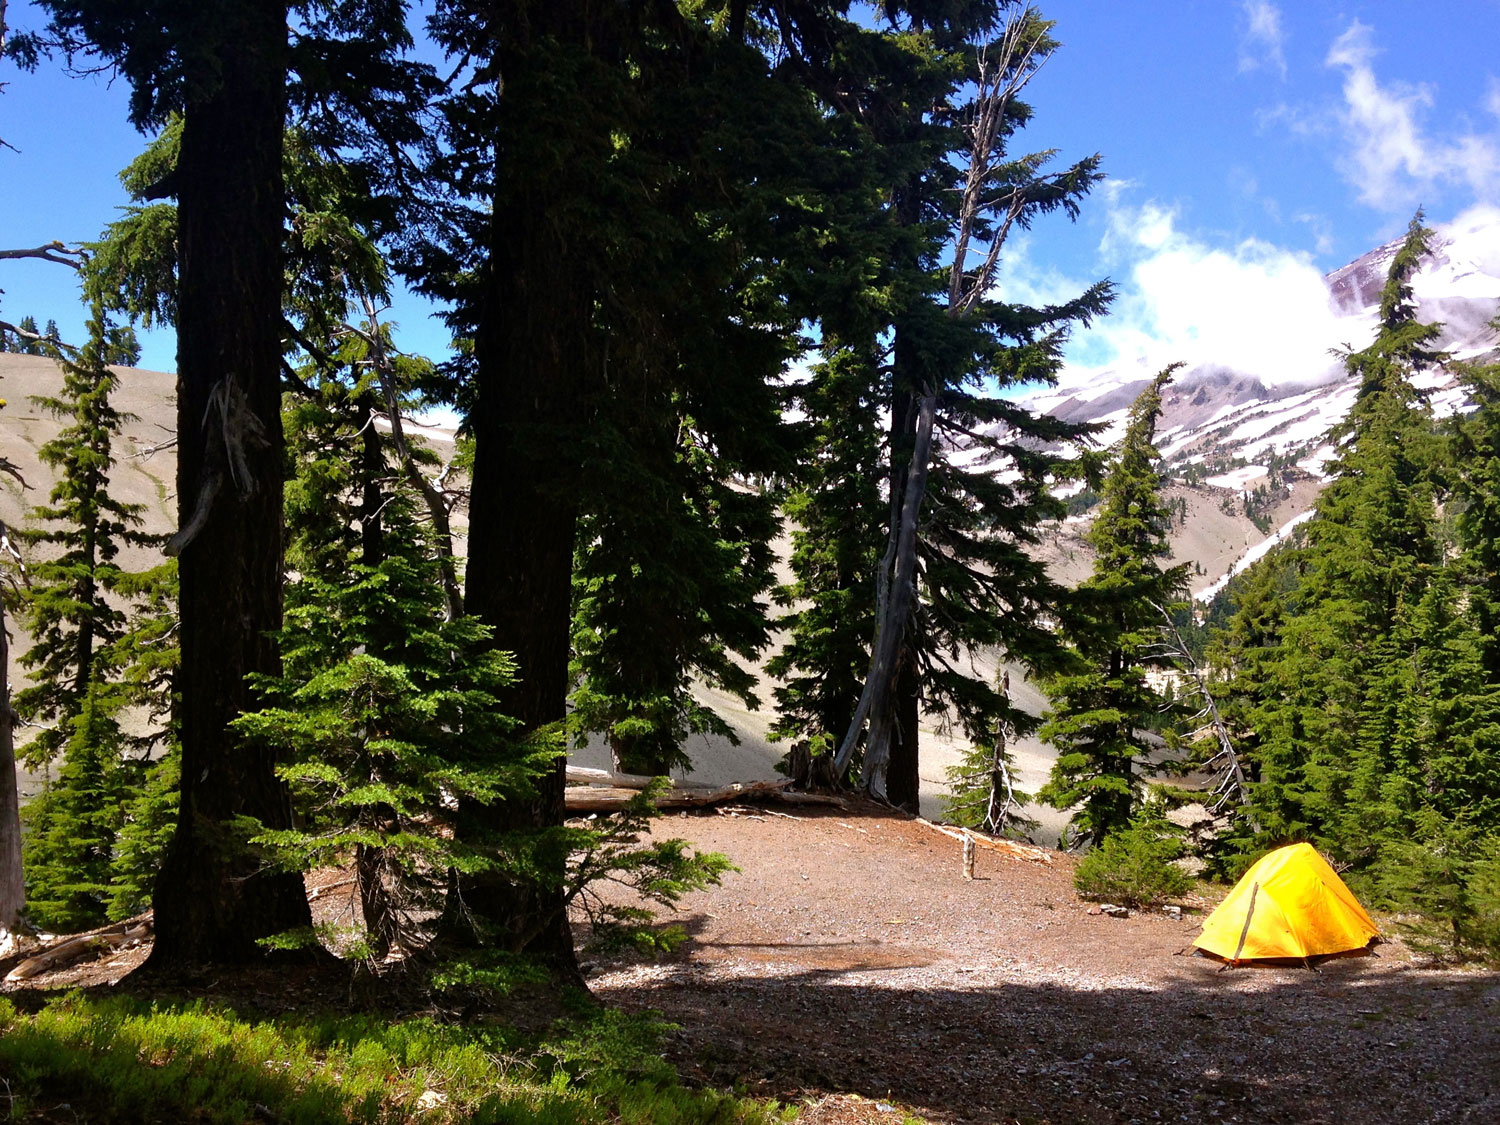 Camping at Moraine Lake at the base of the South Sister